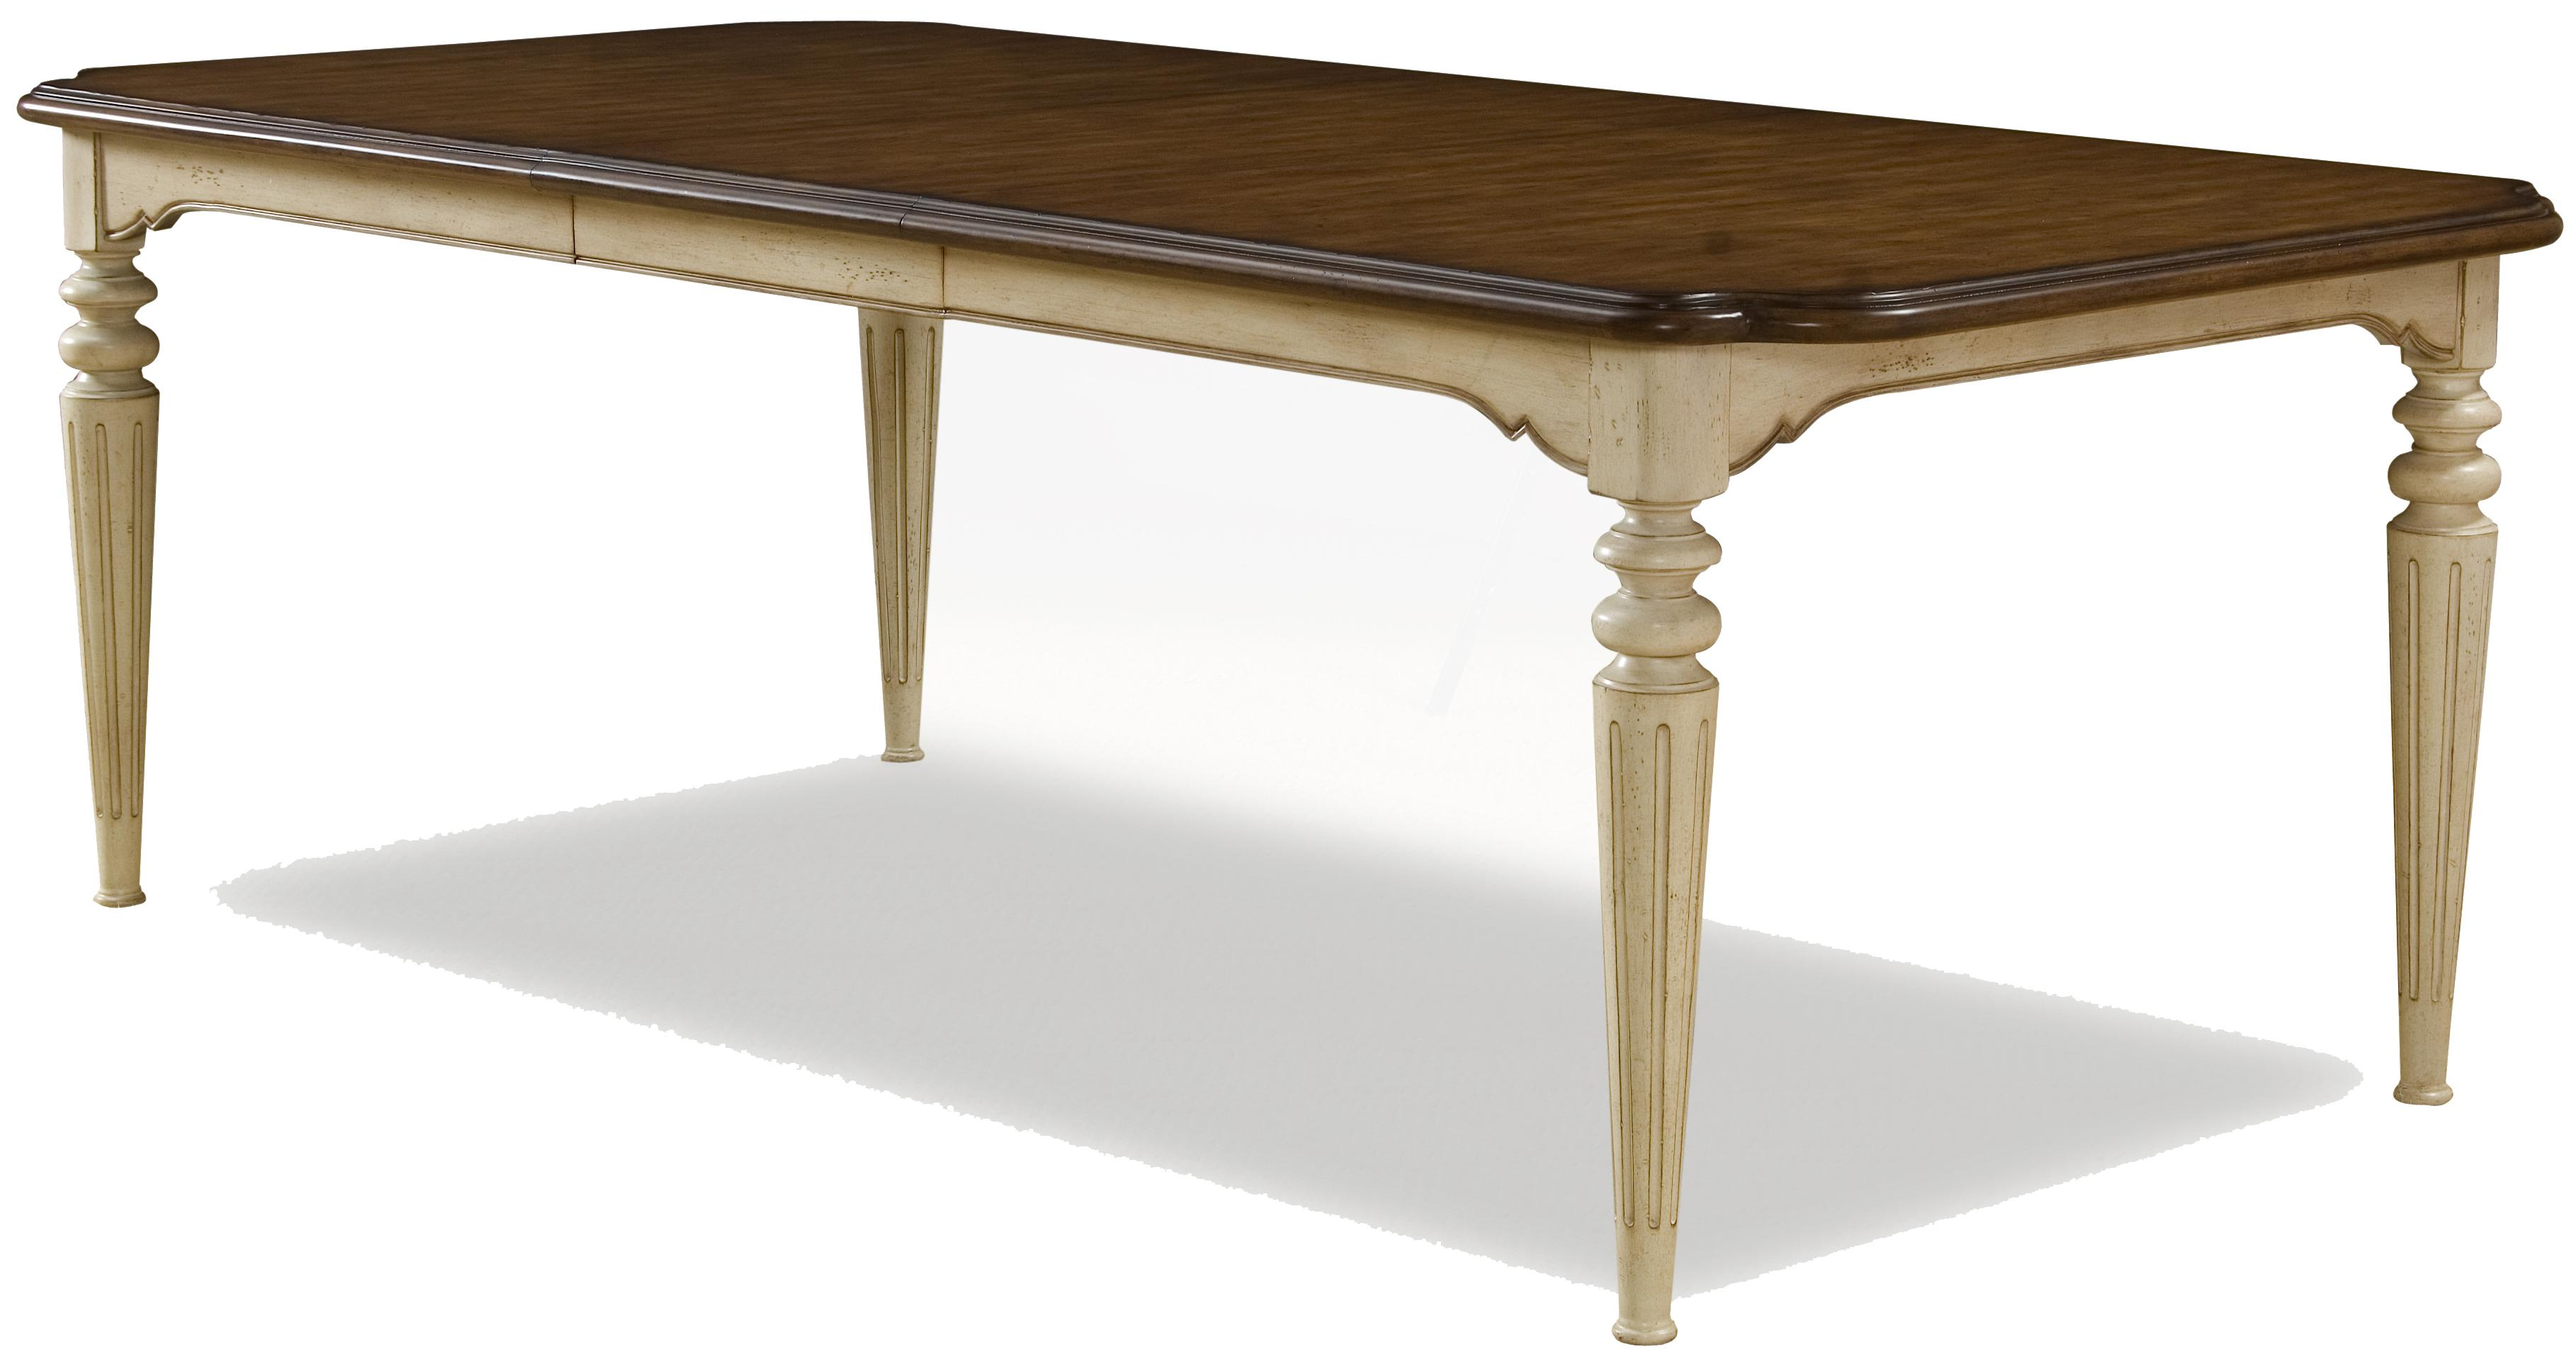 Rectangular two tone dining table by a r t furniture inc for Dining room table 2